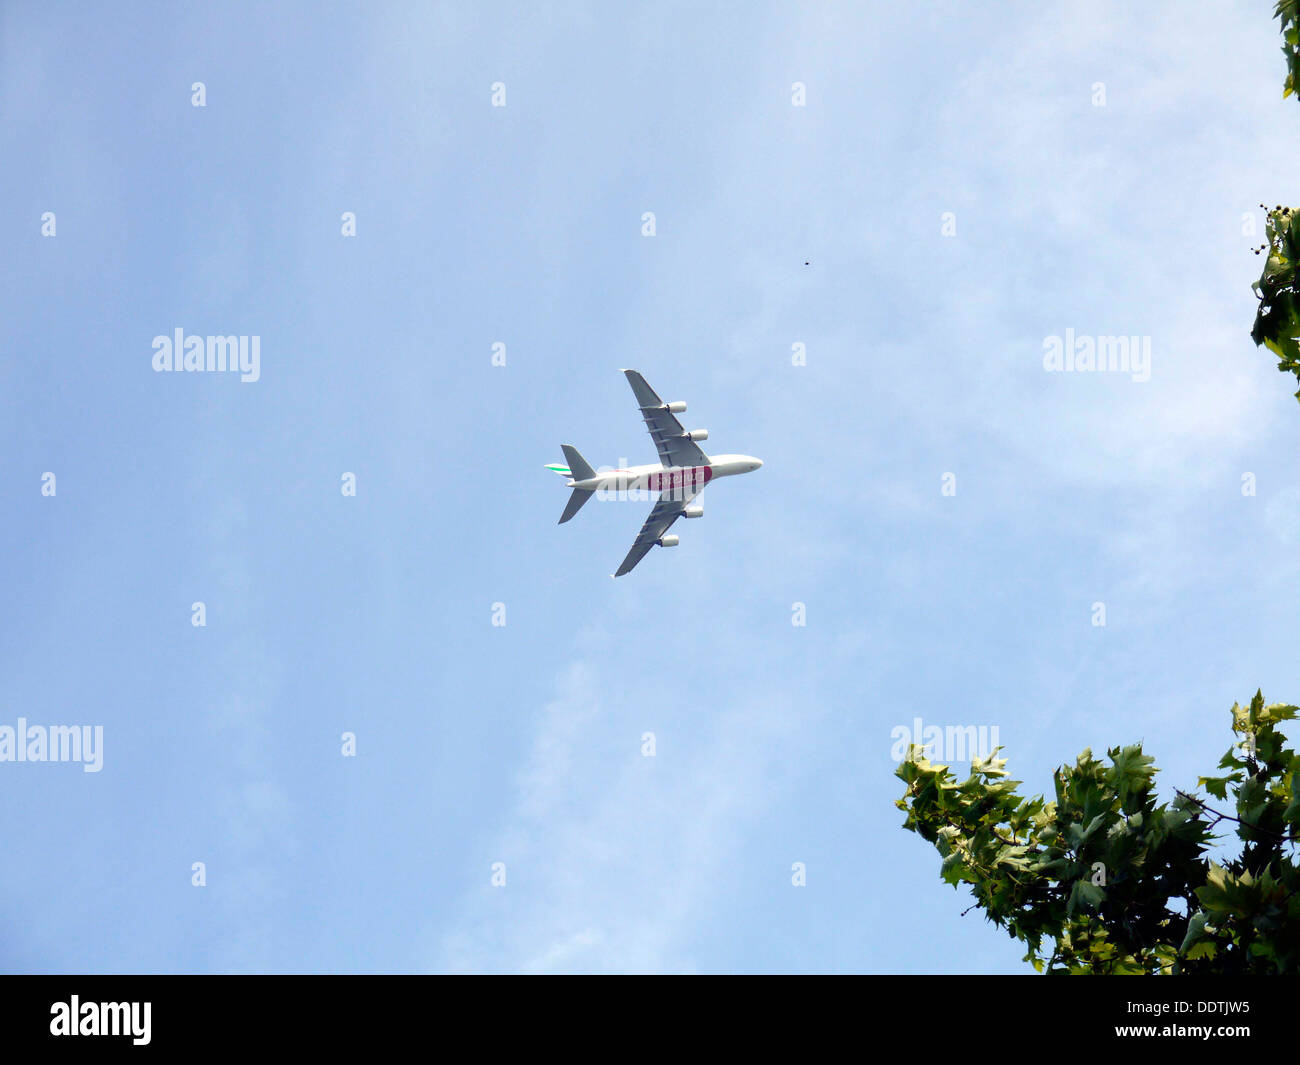 An Emerites Airoplane in the air - Stock Image